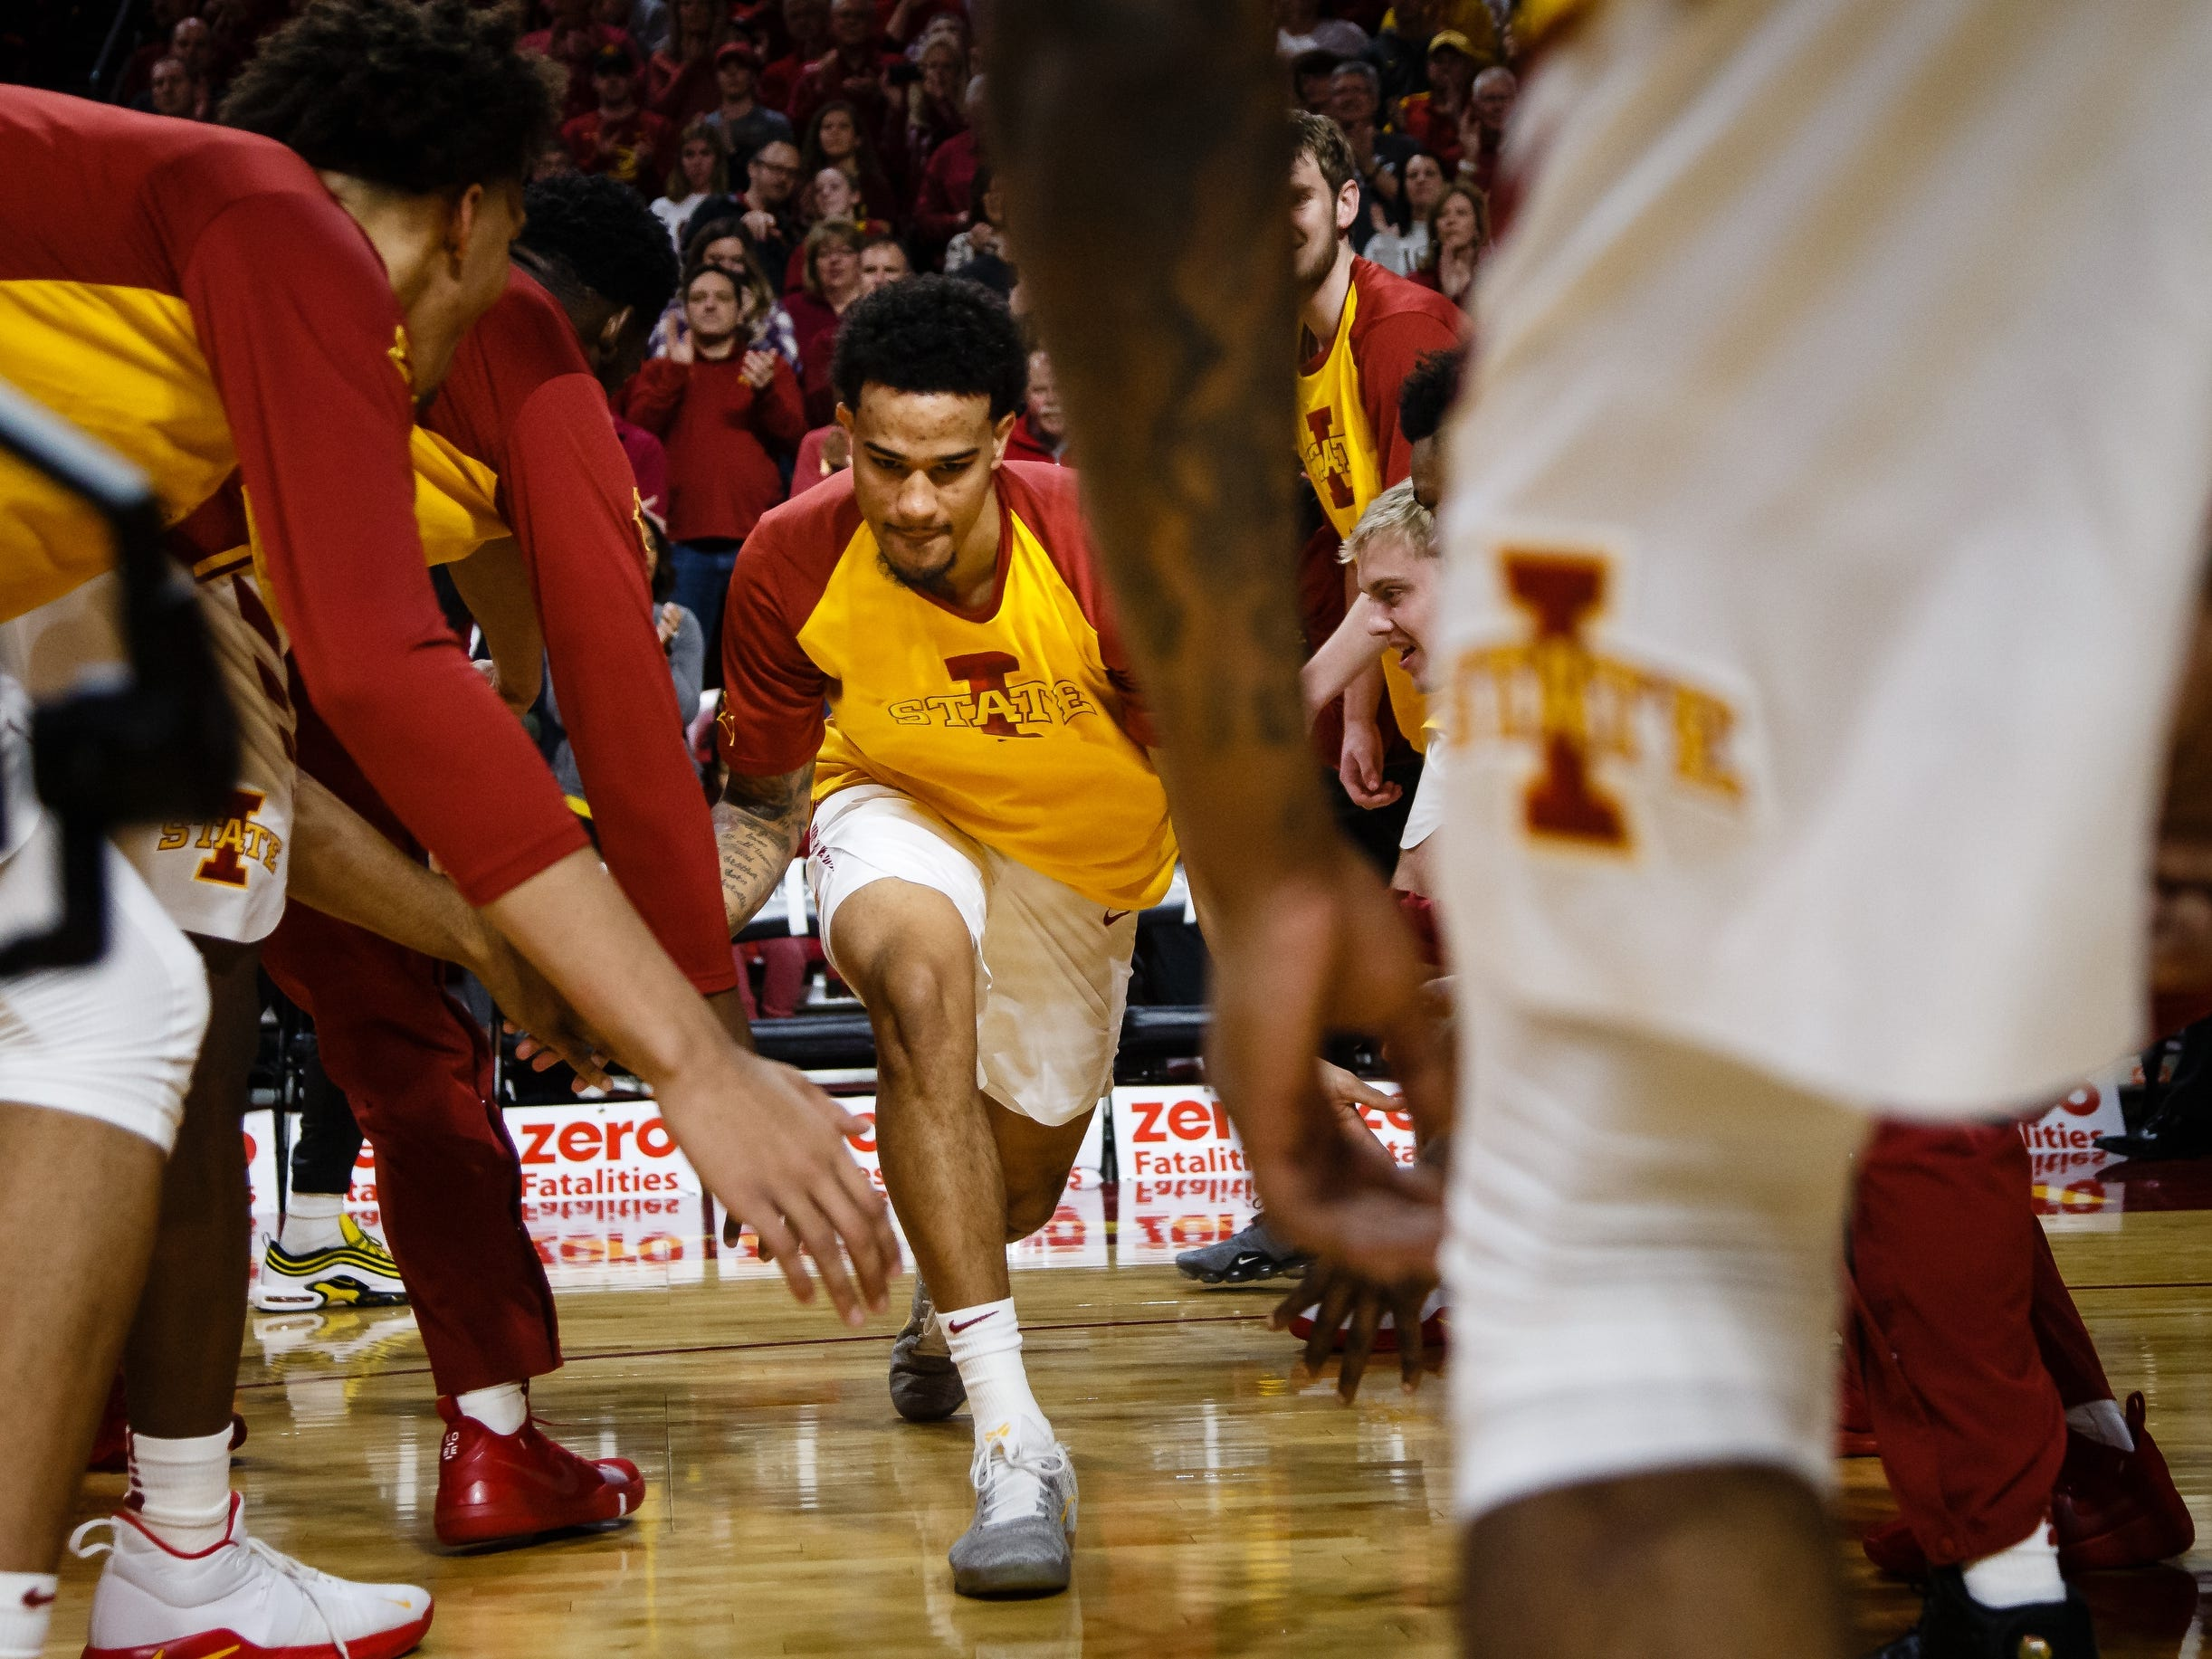 Iowa State's Nick Weiler-Babb (1) is introduced before the first half of their basketball game on Saturday, Jan. 5, 2019, in Ames. Iowa State would go on to defeat Kansas 77-60.